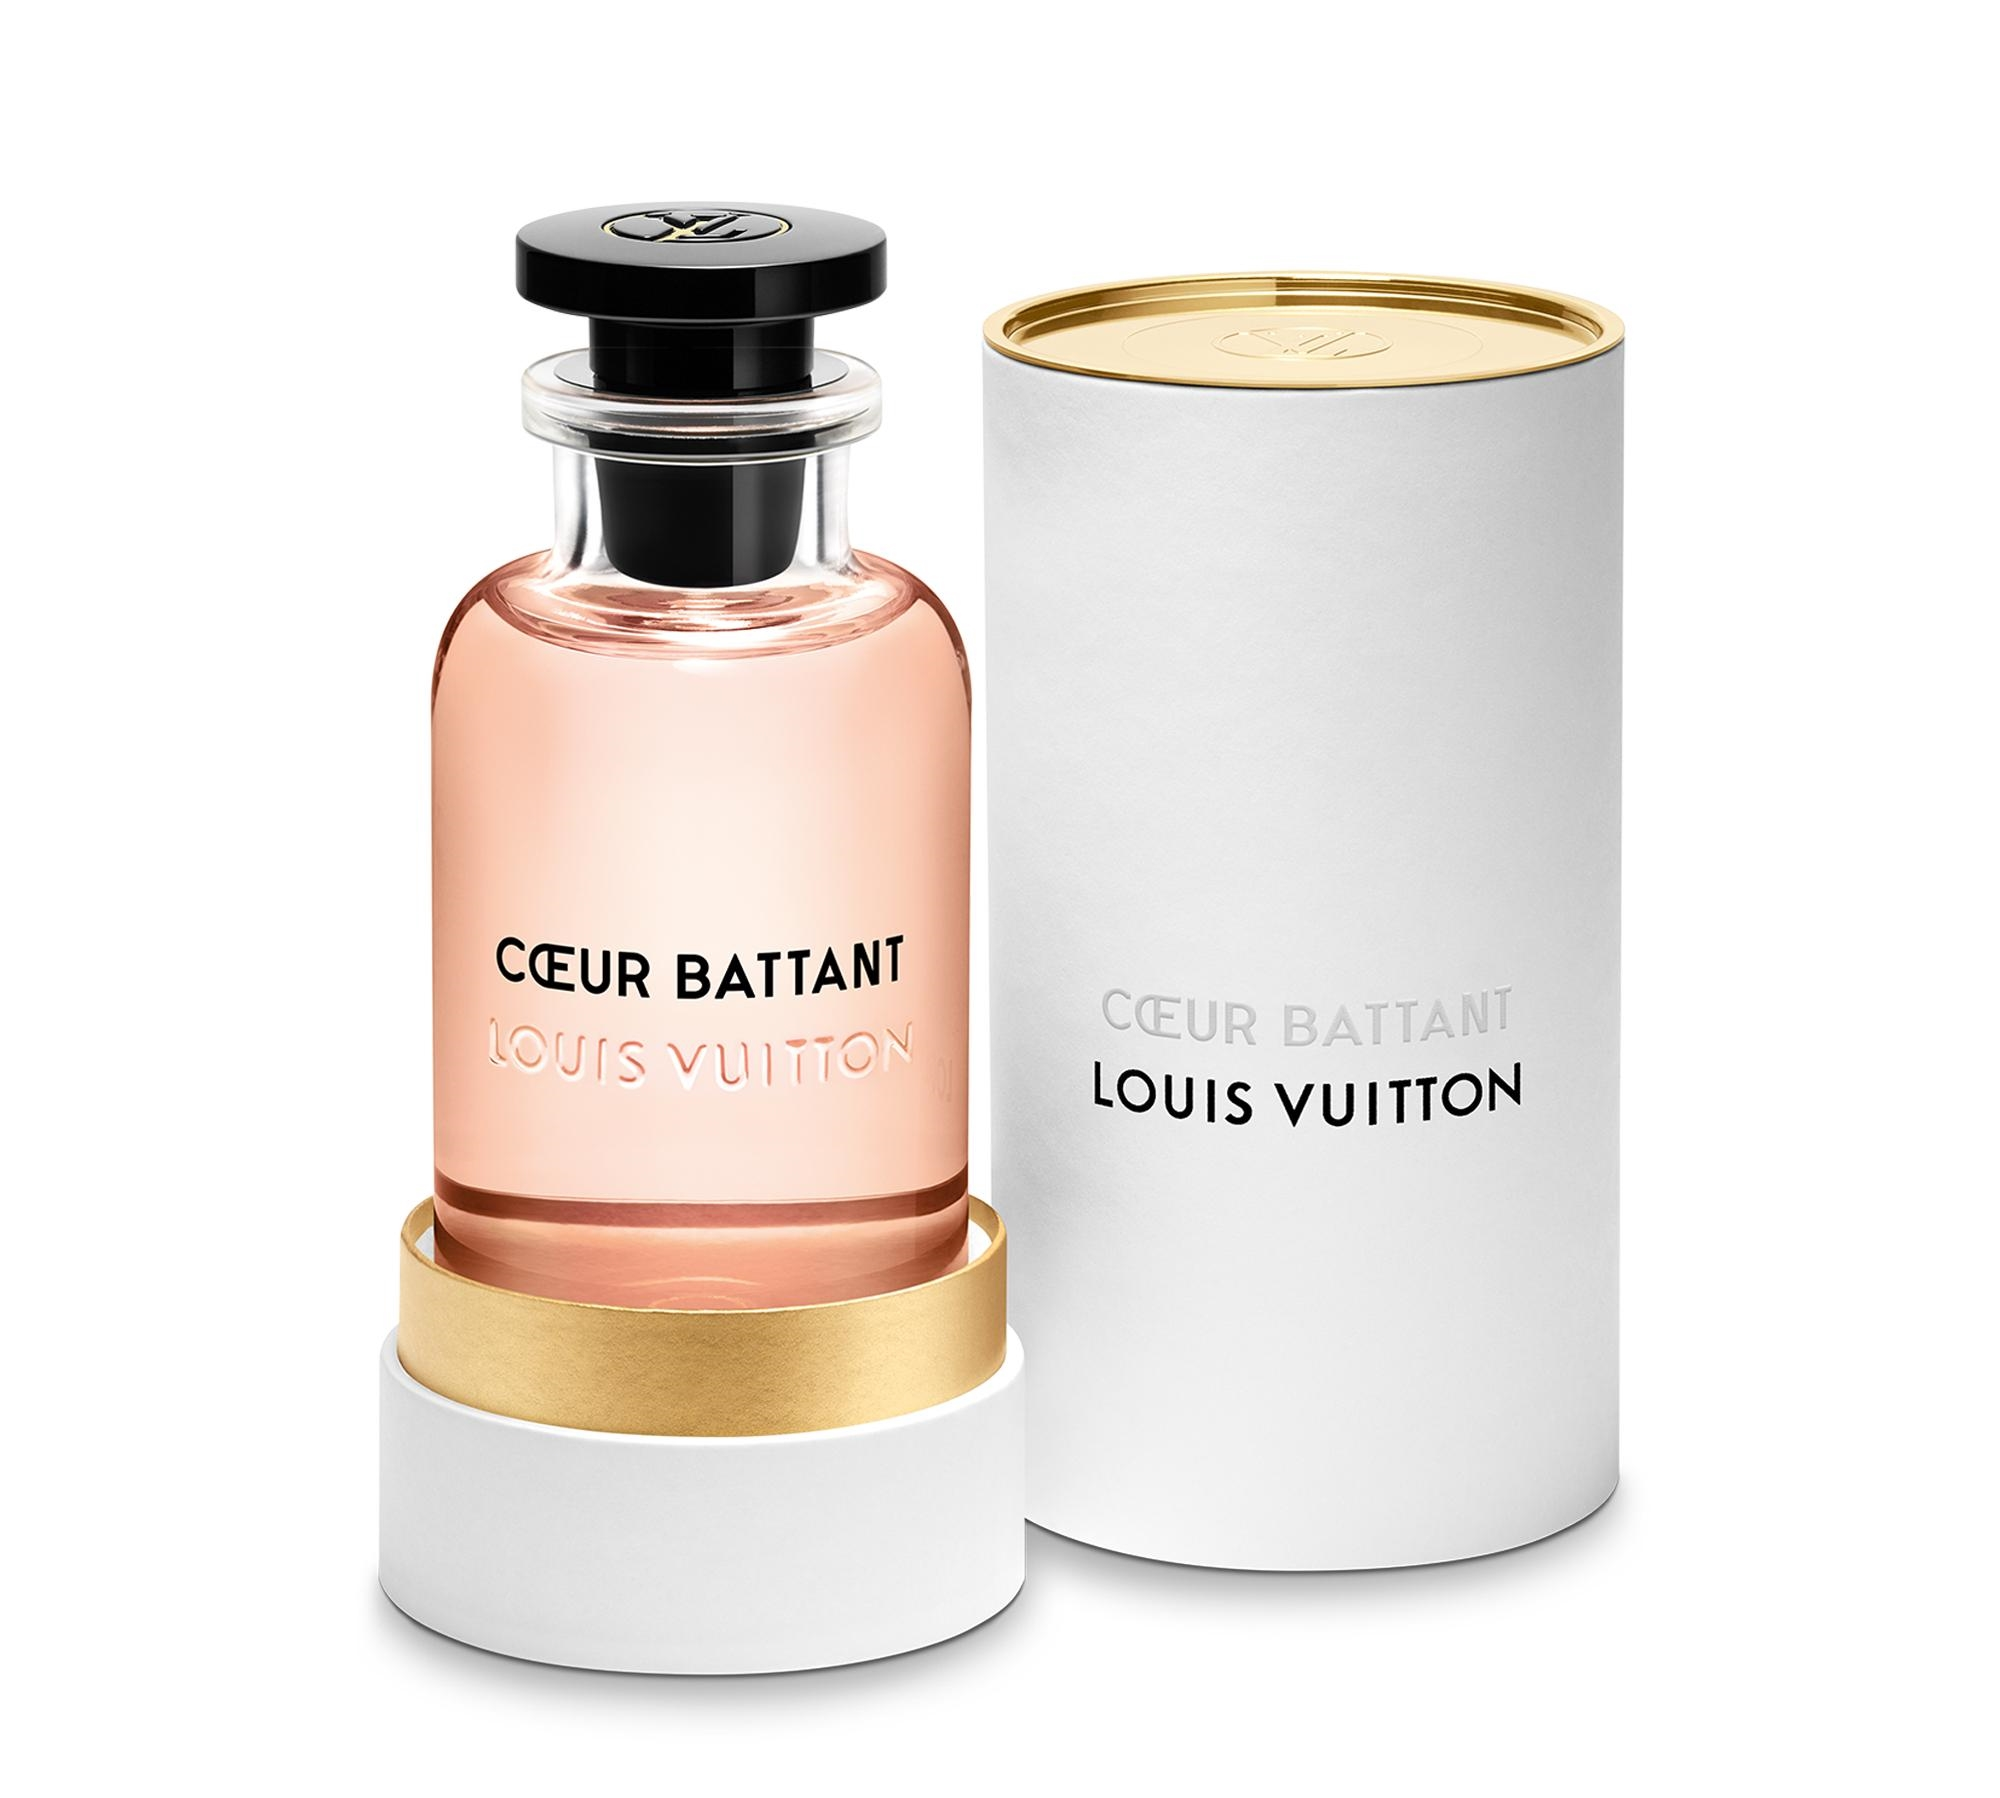 Louis-Vuitton-Cœur-Battant-04-min